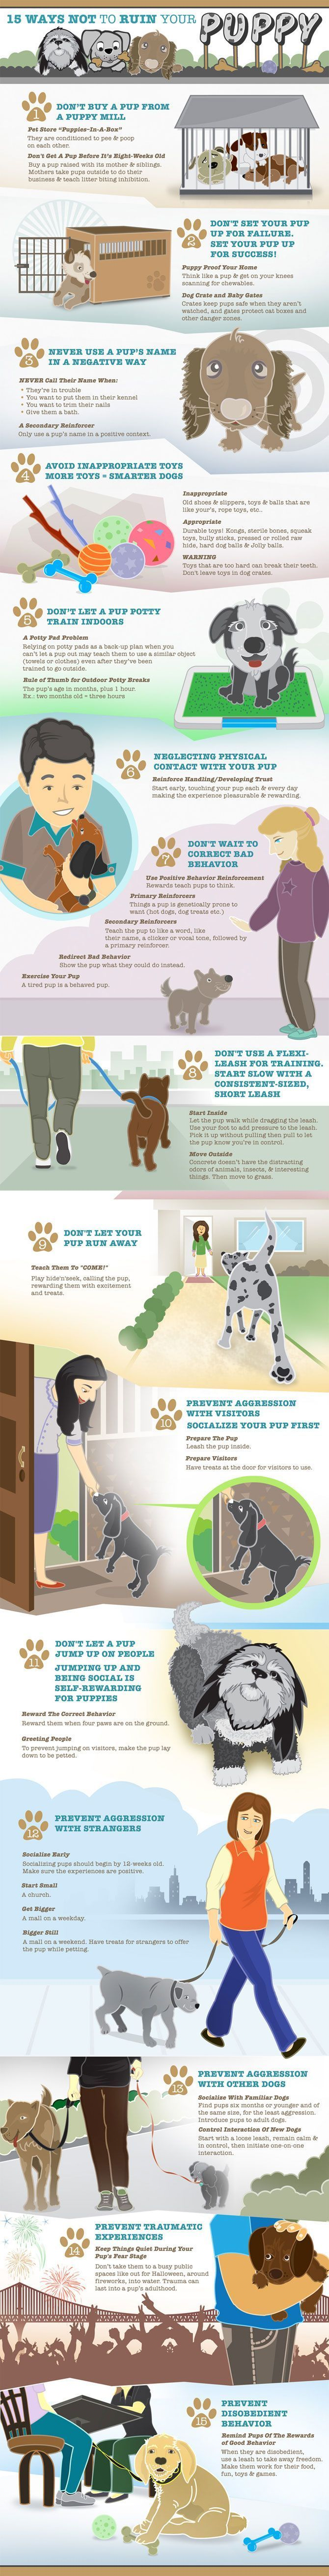 Partners for the Cuba Pound supports training and patience to make your adopted pet a lifelong companion.  INFOGRAPHIC: 15 Important Ways to Not RUIN Your Puppy